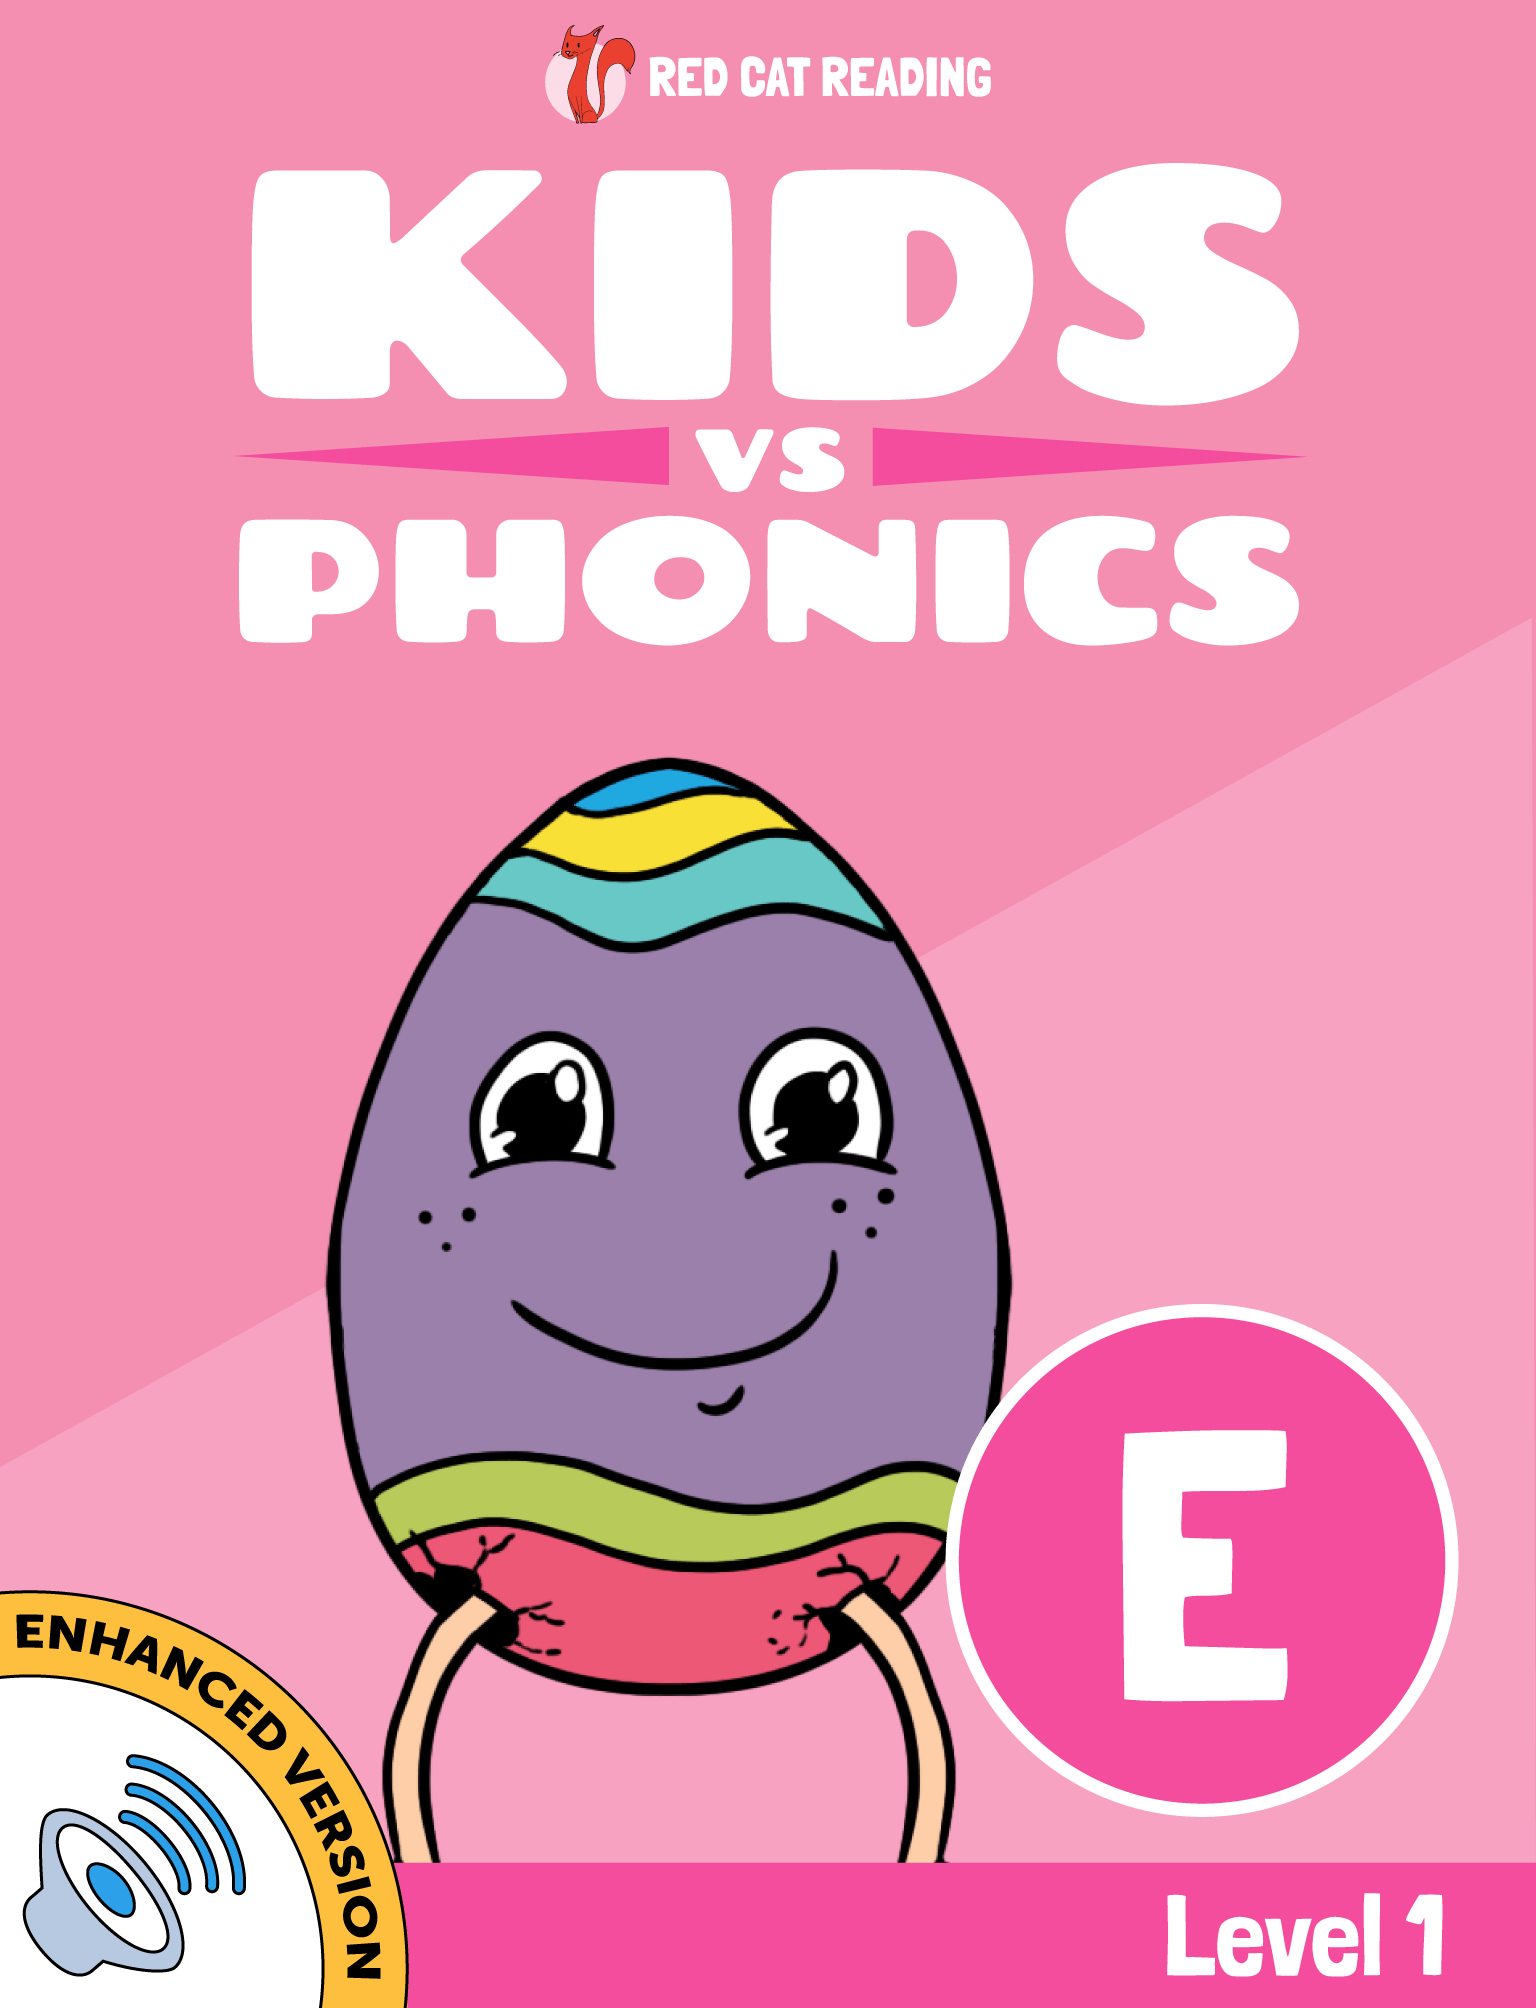 Red Cat Reading Kids vs Phonics Phonic E Sound Level 1 Learn to Read